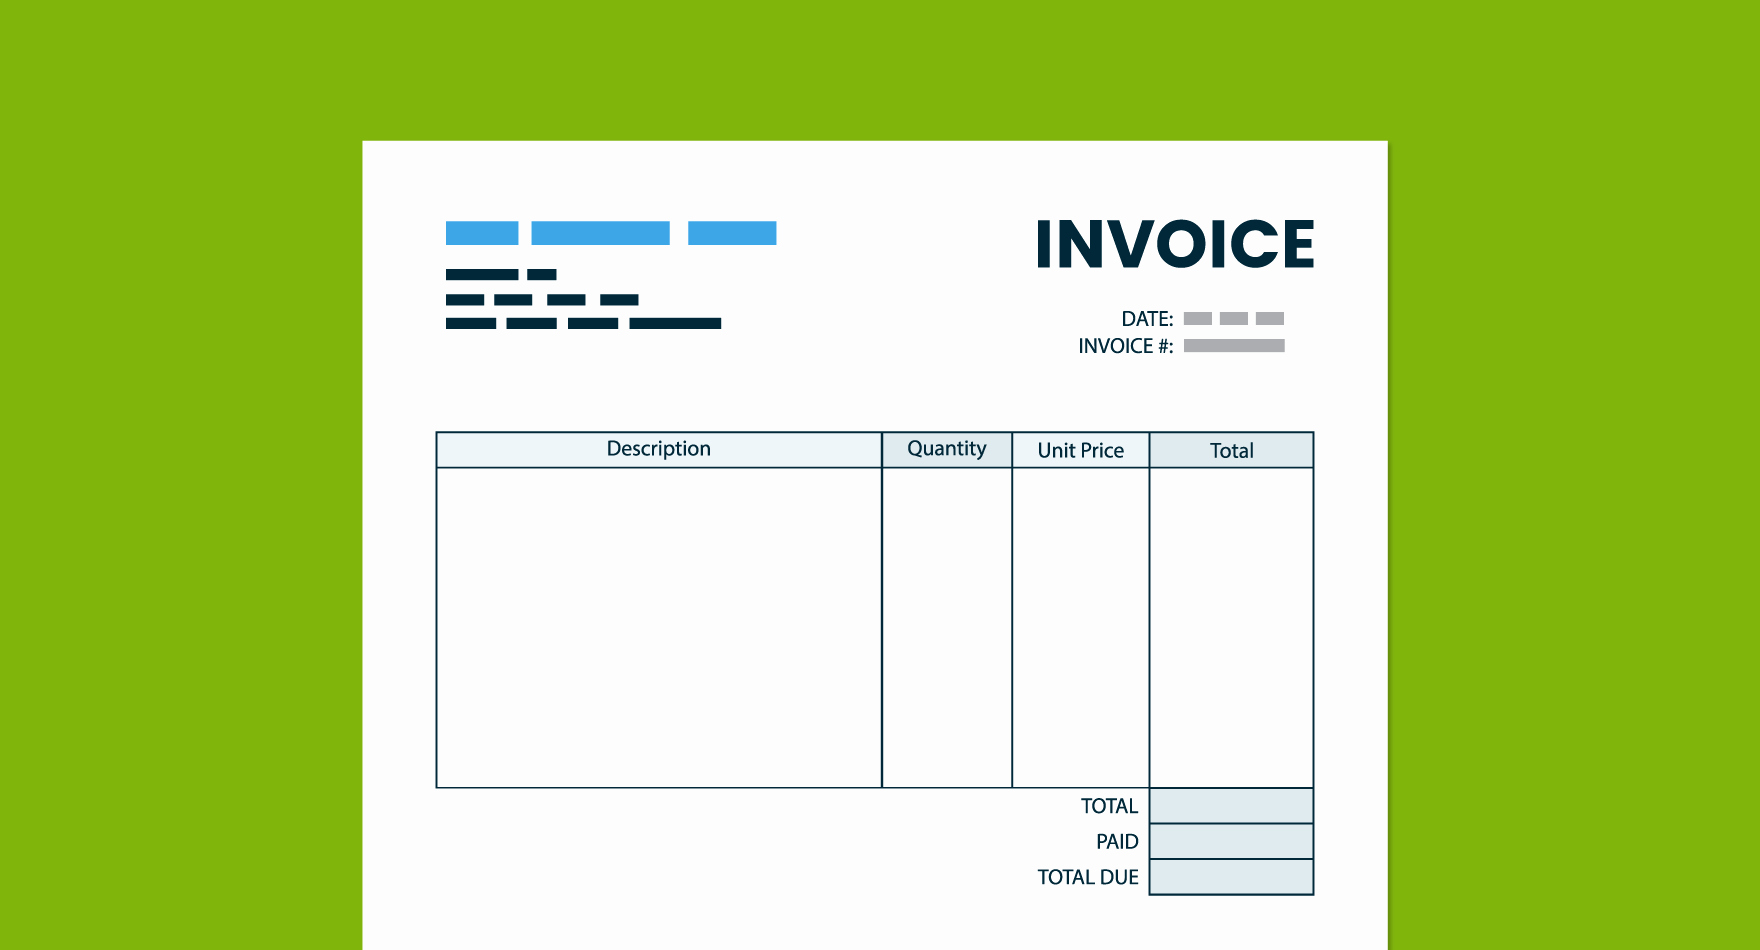 Quickbooks Invoice Template Download Inspirational Free Quickbooks Invoice Template